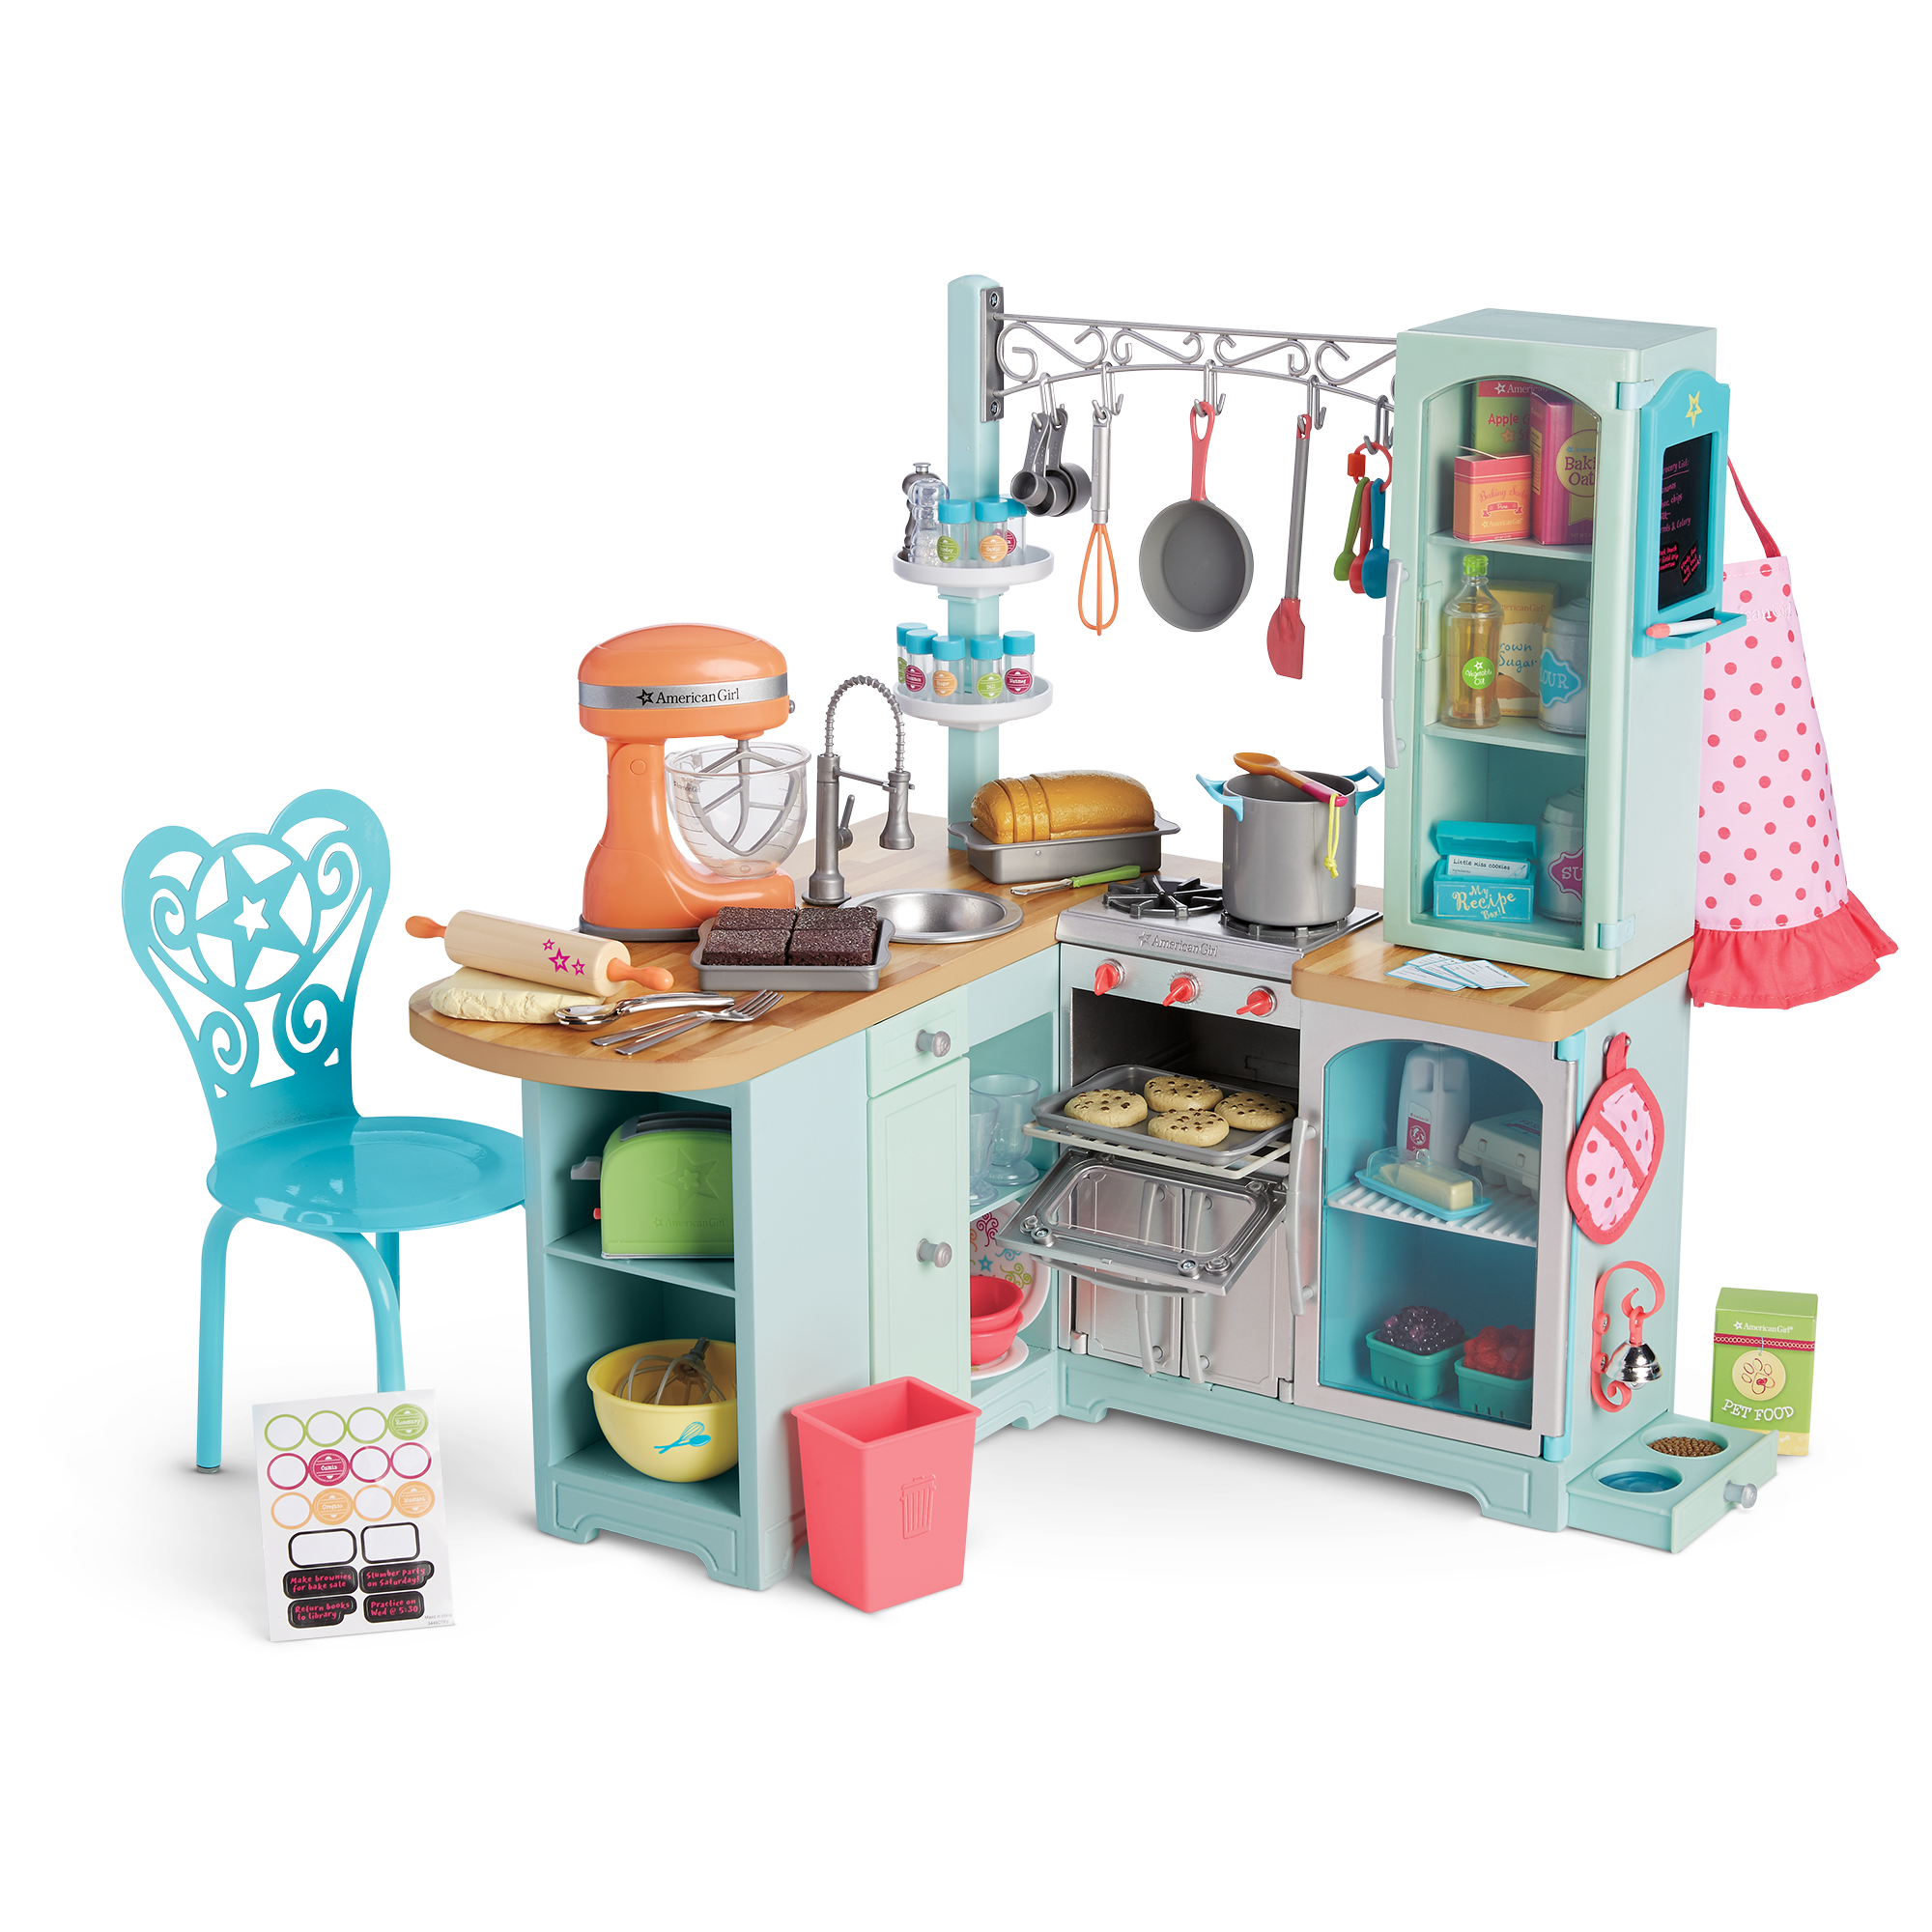 Image Gourmetkitchenset1 Png American Girl Wiki Fandom Powered